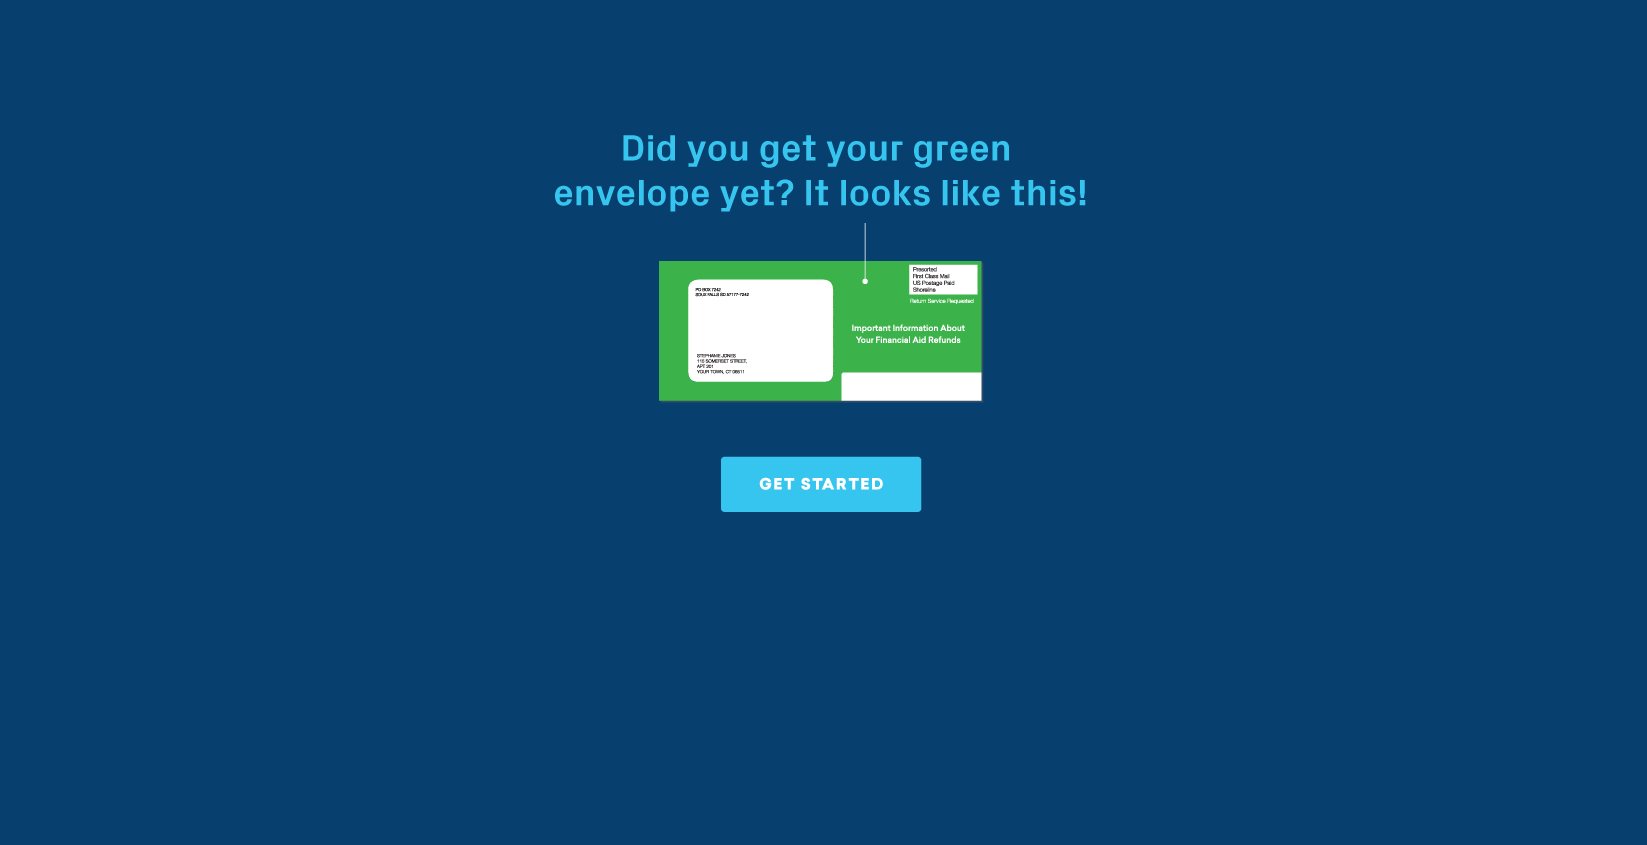 Your green envelope from BankMobile contains your personal code.